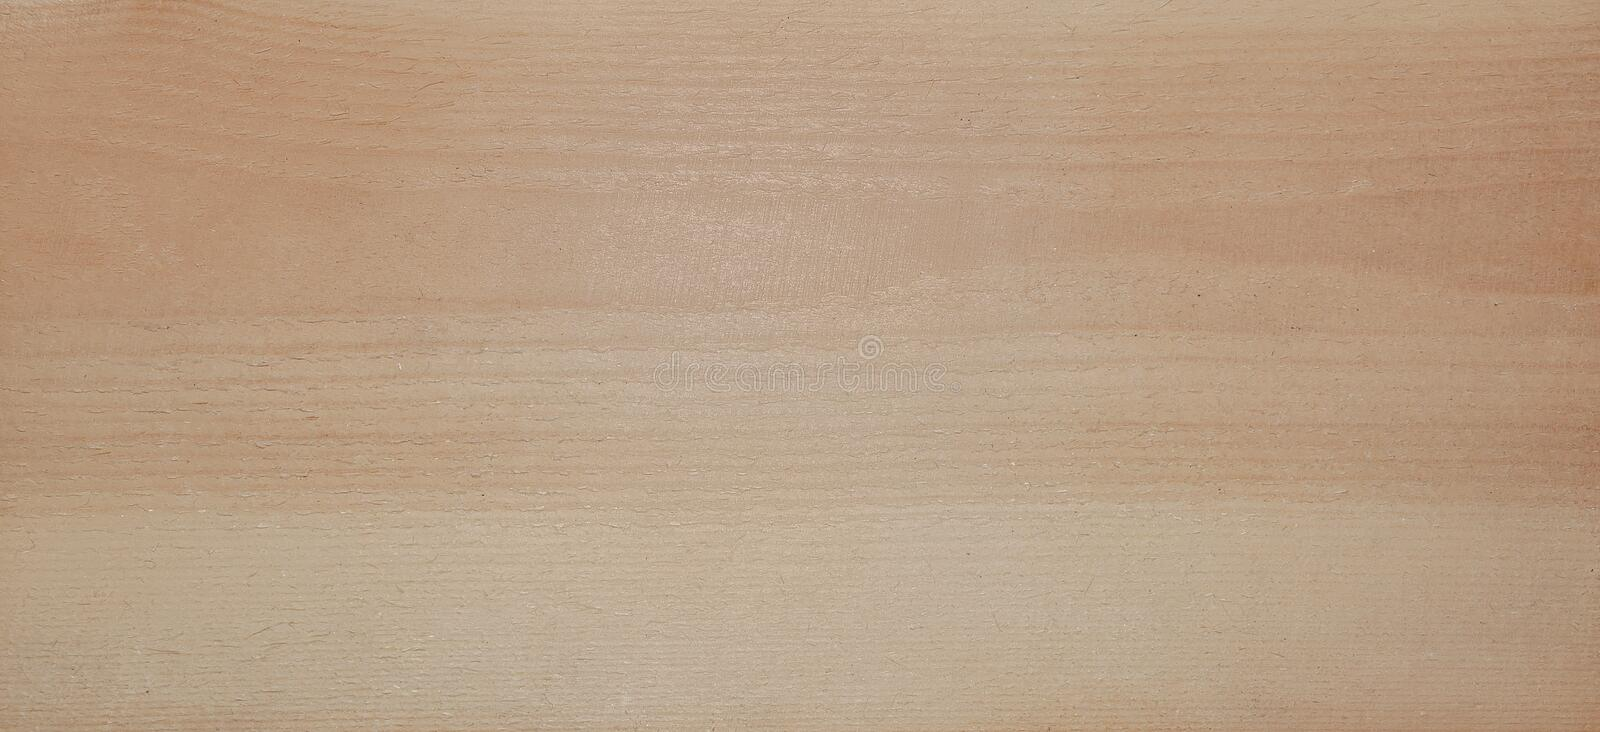 Wooden texture background. light pine wood Board surface sawn royalty free stock photo